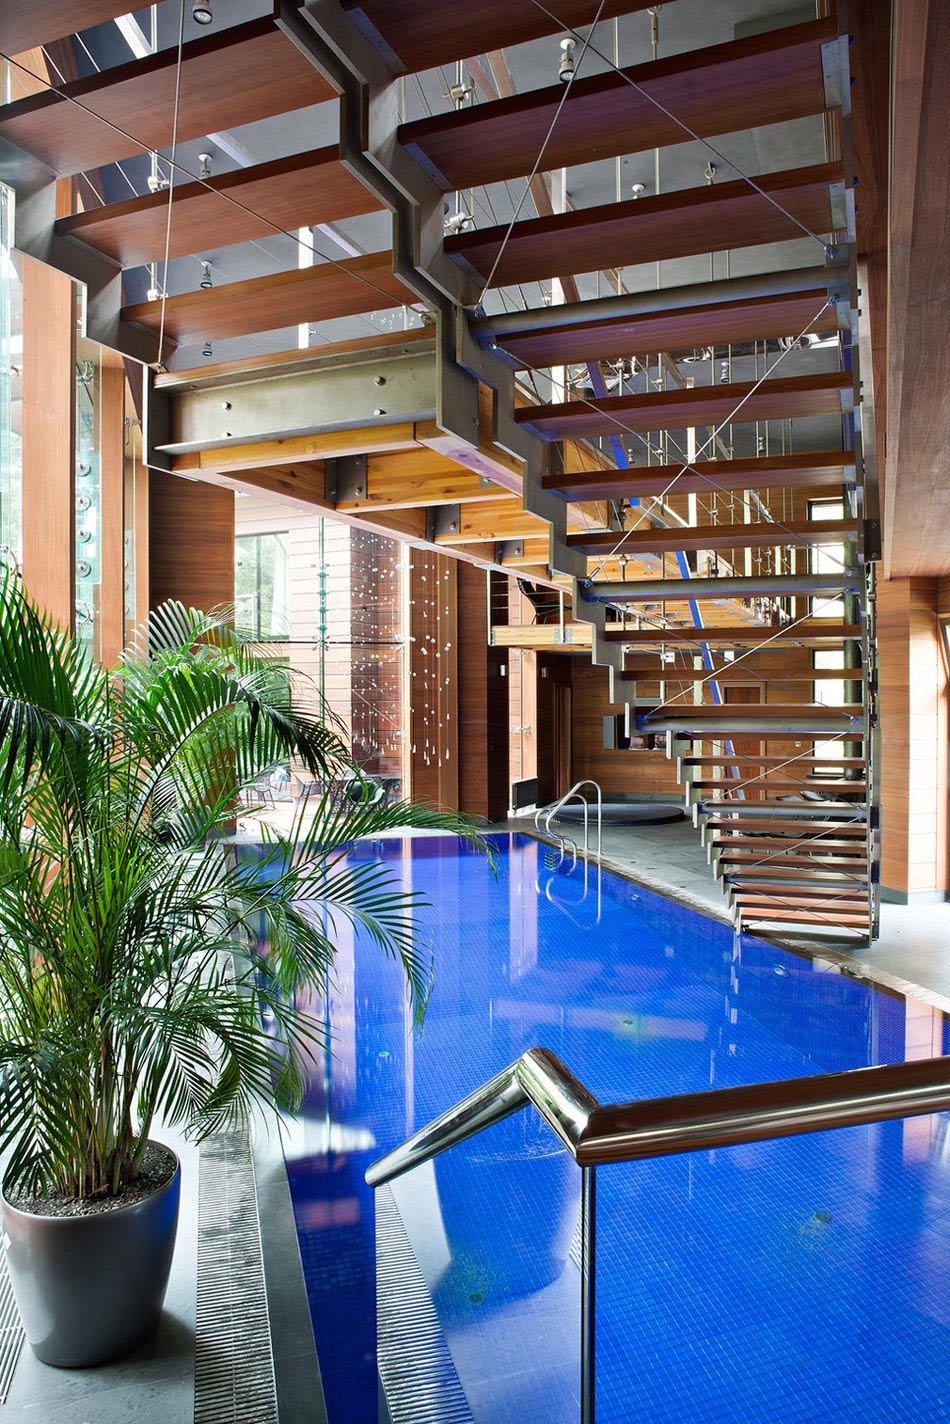 Indoor Pool, Stairs, Sophisticated House Near Moscow by Olga Freiman